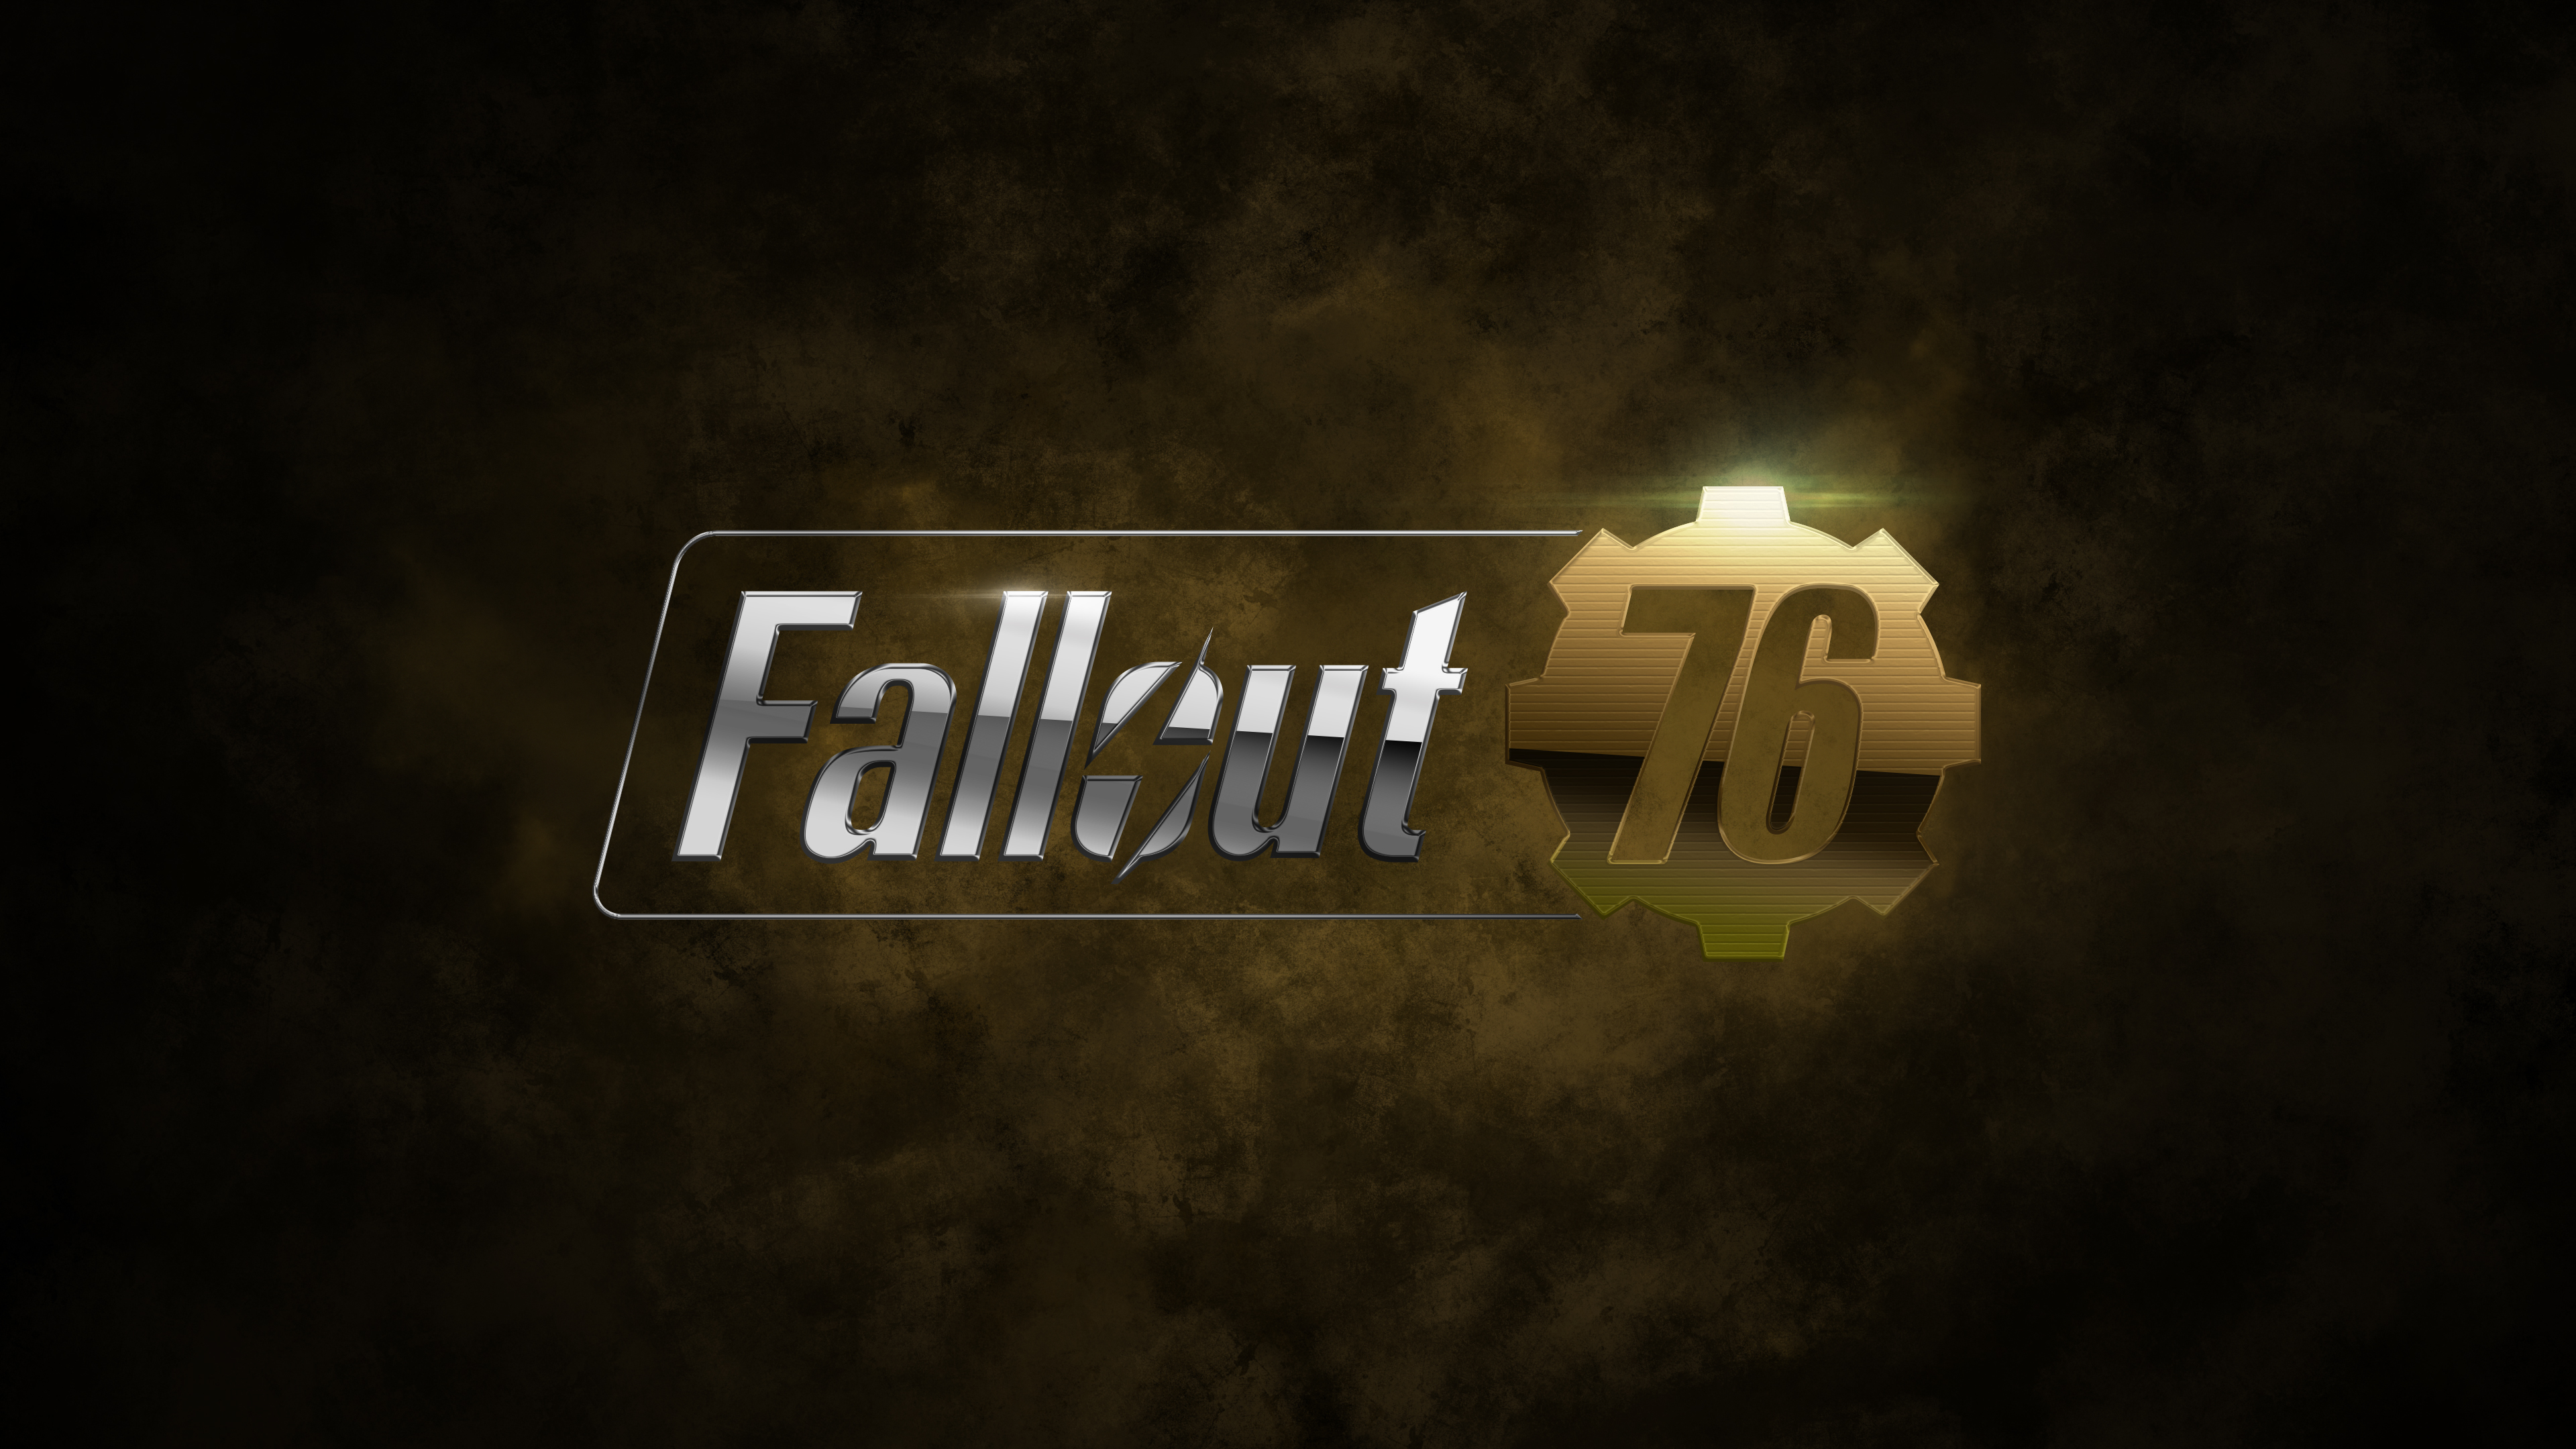 Fallout 76 4k Wallpaper By Valencygraphics On Deviantart